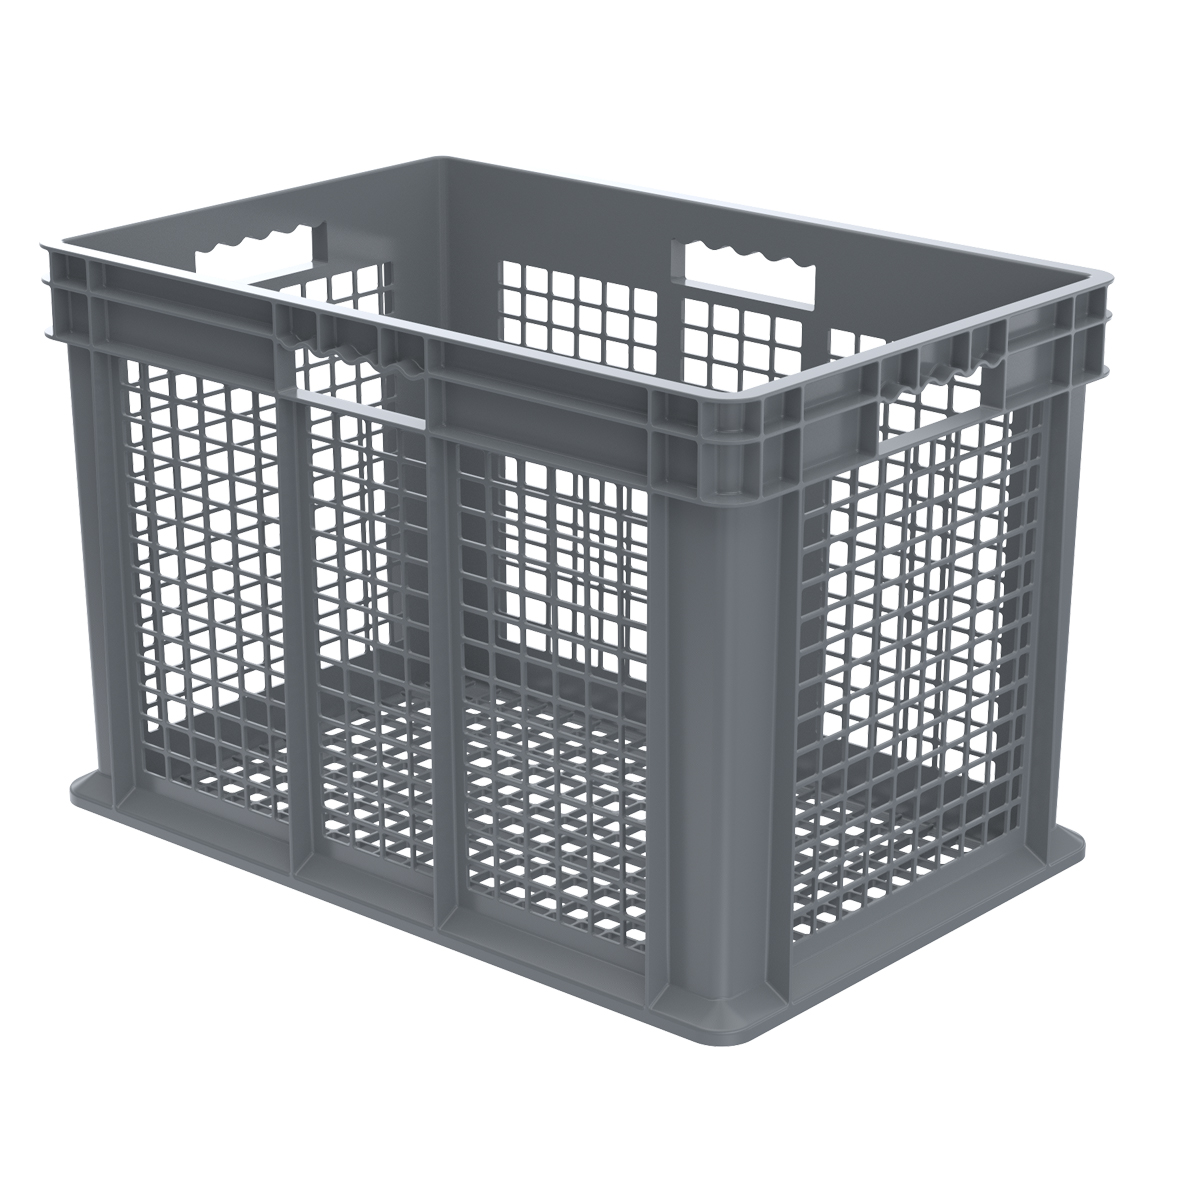 Straight Wall Container, Mesh 23-3/4 x 15-3/4 x 16-1/8, Gray (37616GREY).  This item sold in carton quantities of 2.